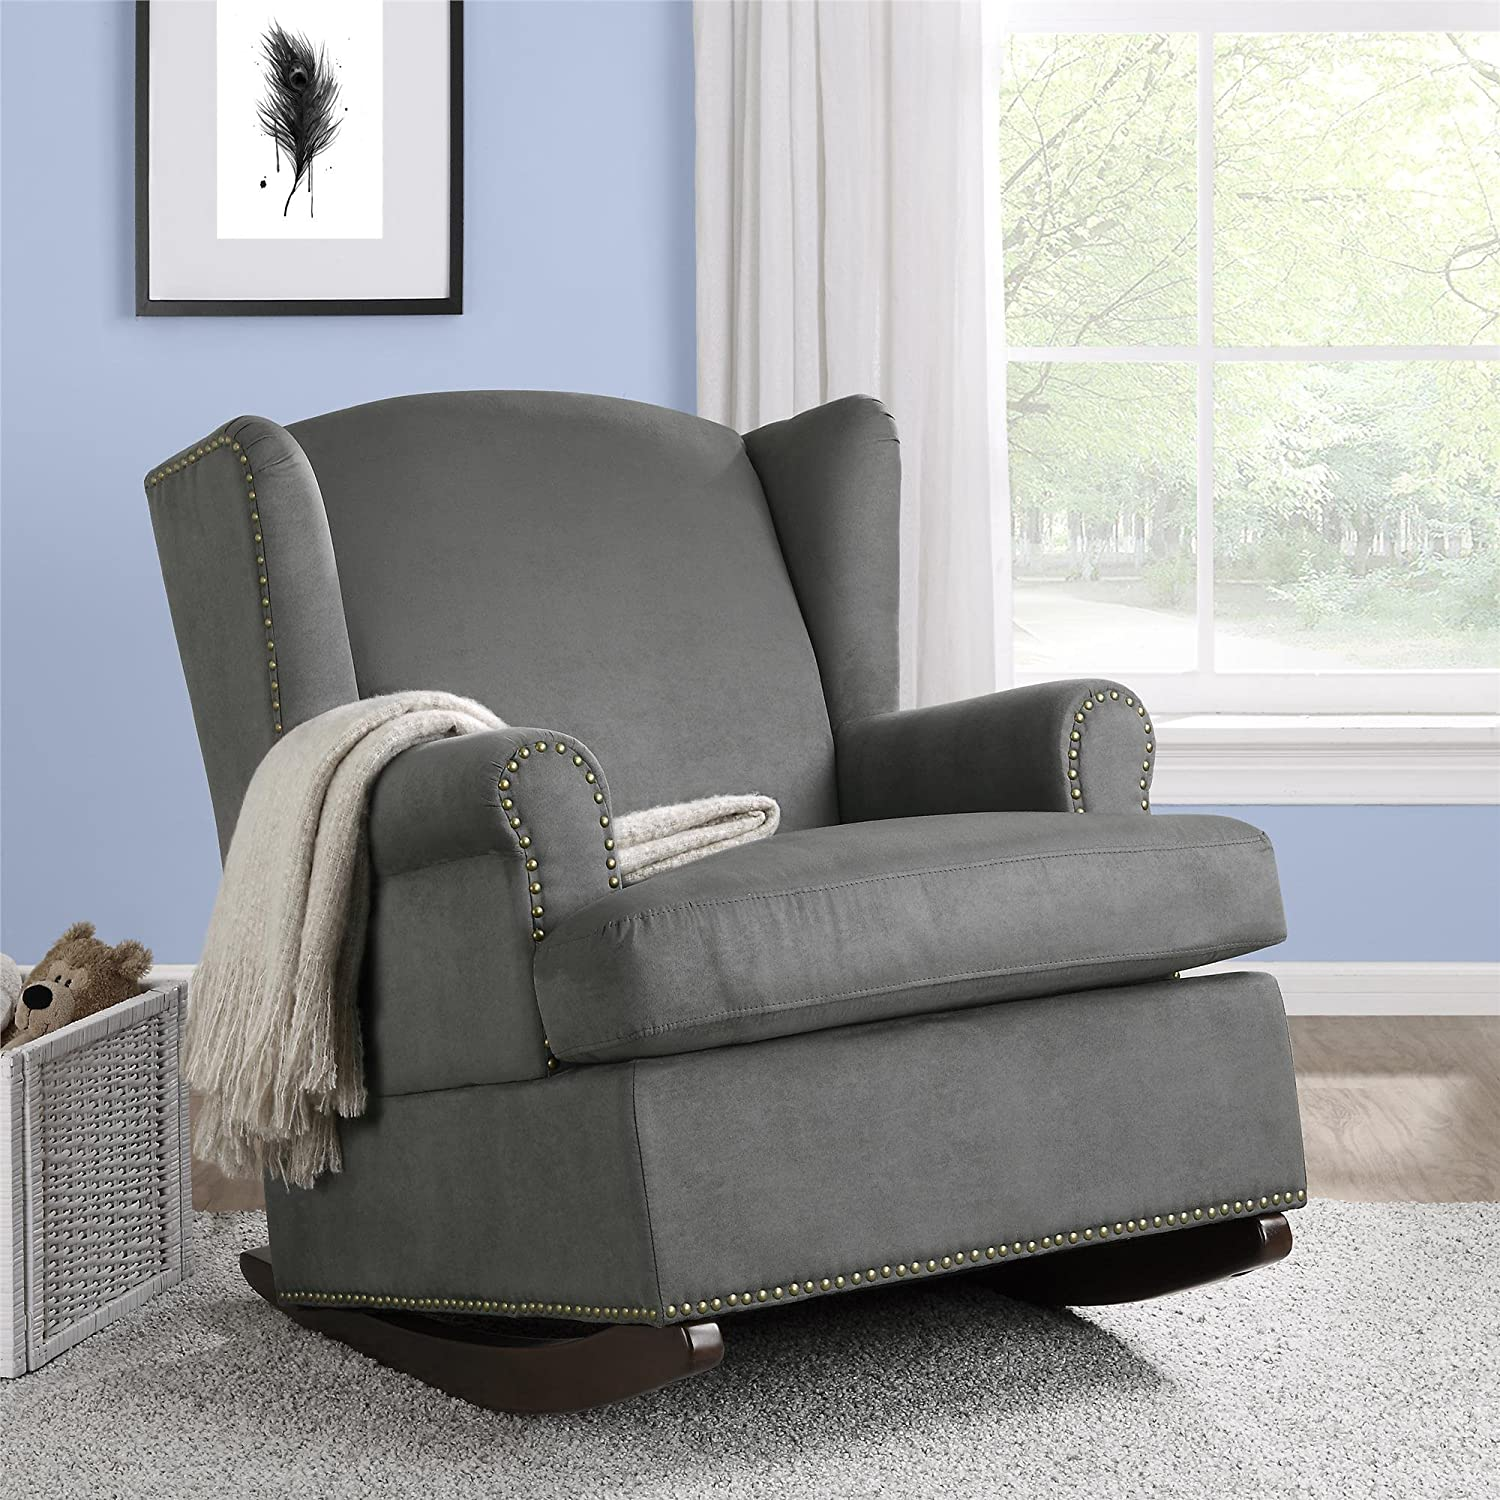 amazoncom baby relax harlow wingback nursery room rocker with nail heads charcoal baby